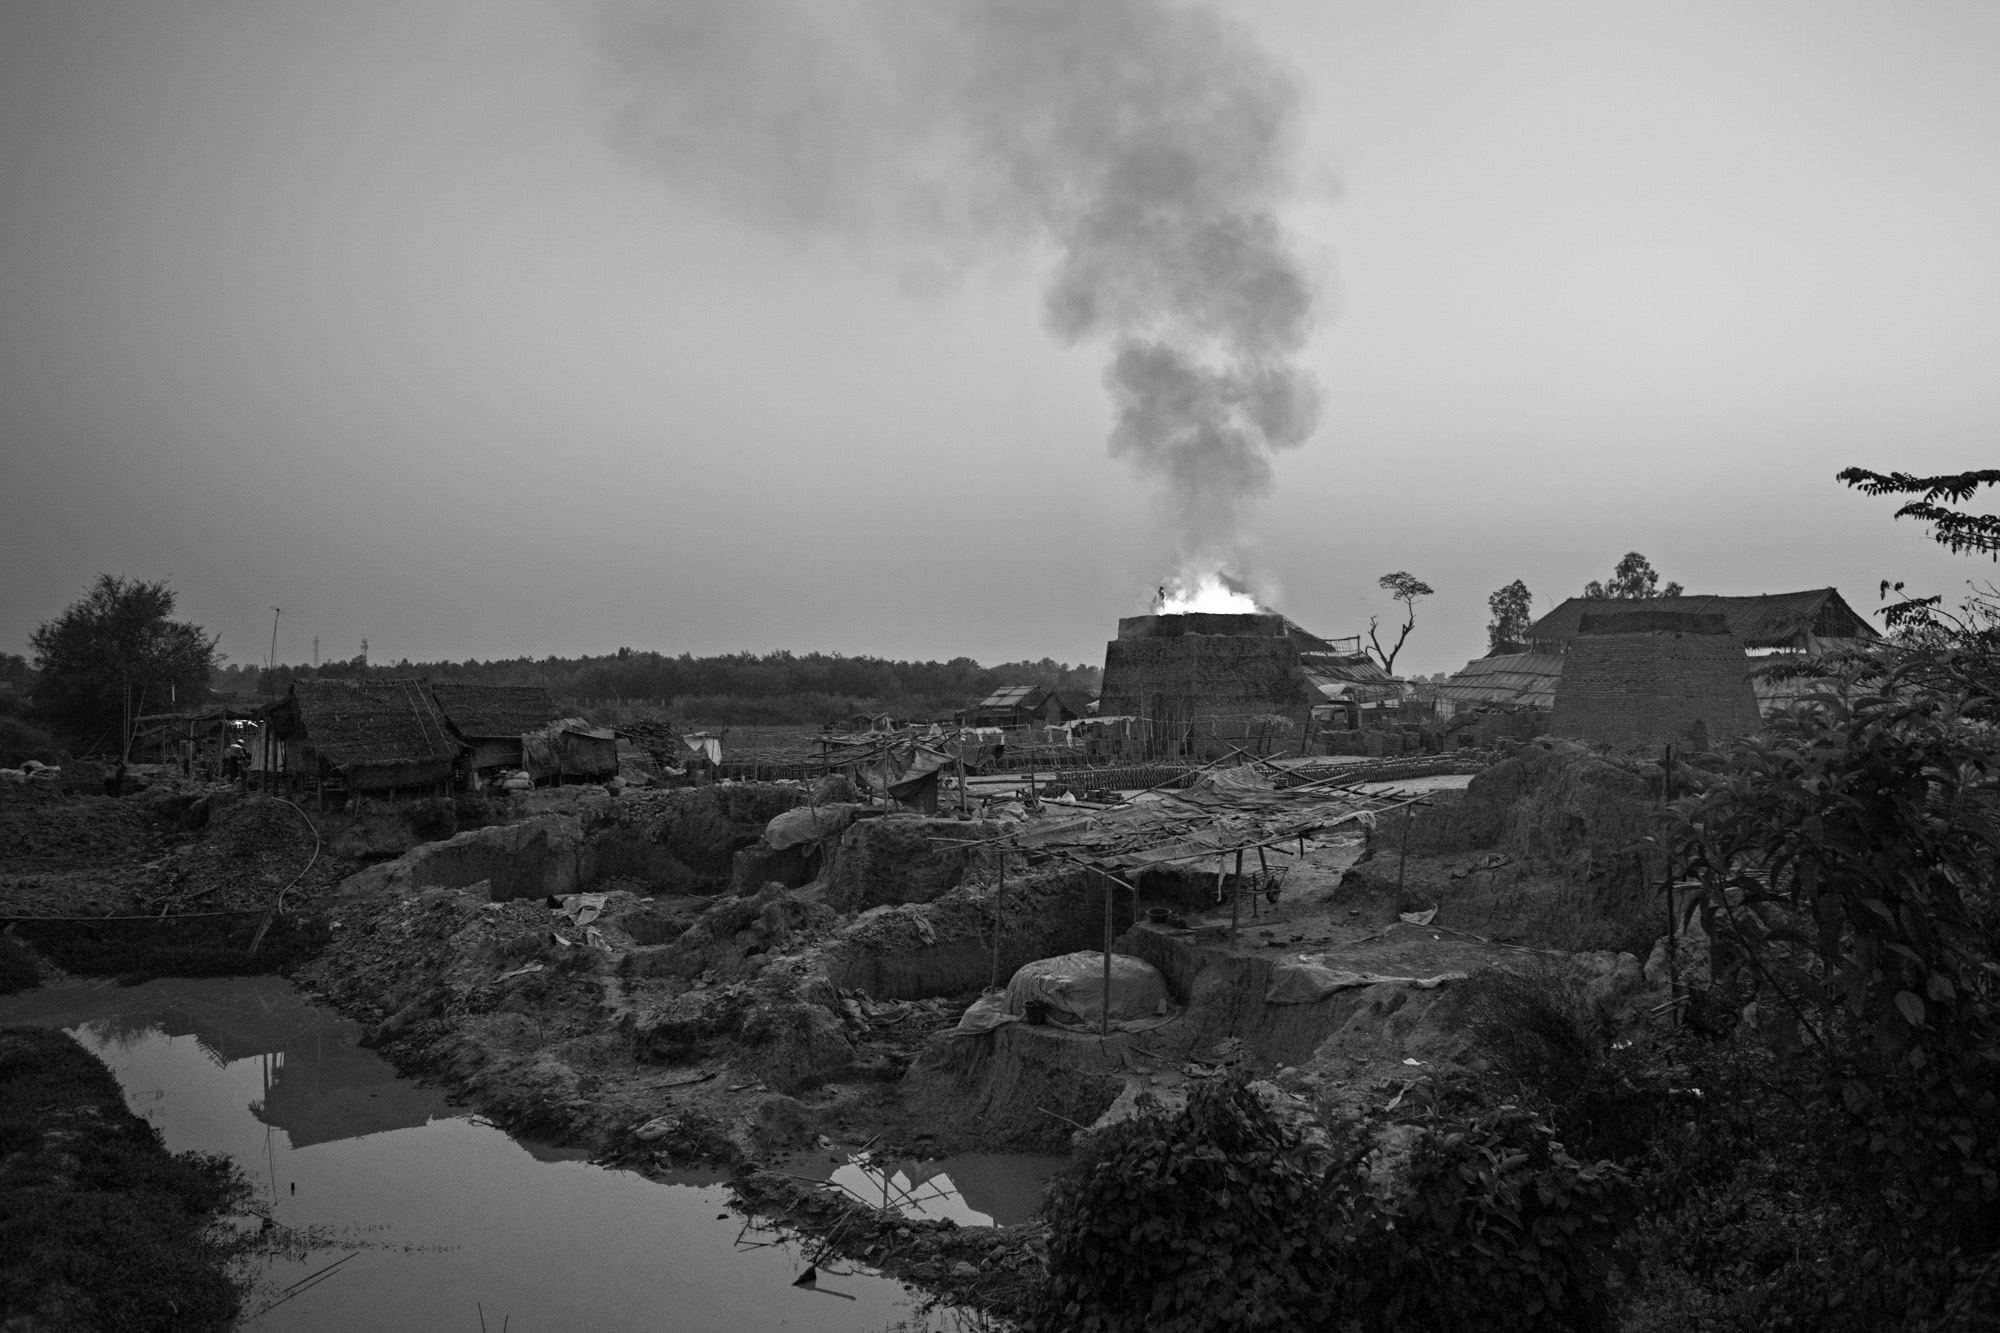 A brick kiln burns into the evening. These kilns, which can be built up to twenty-five feet high, will burn for up to a week creating acrid smoke that wafts over the community.